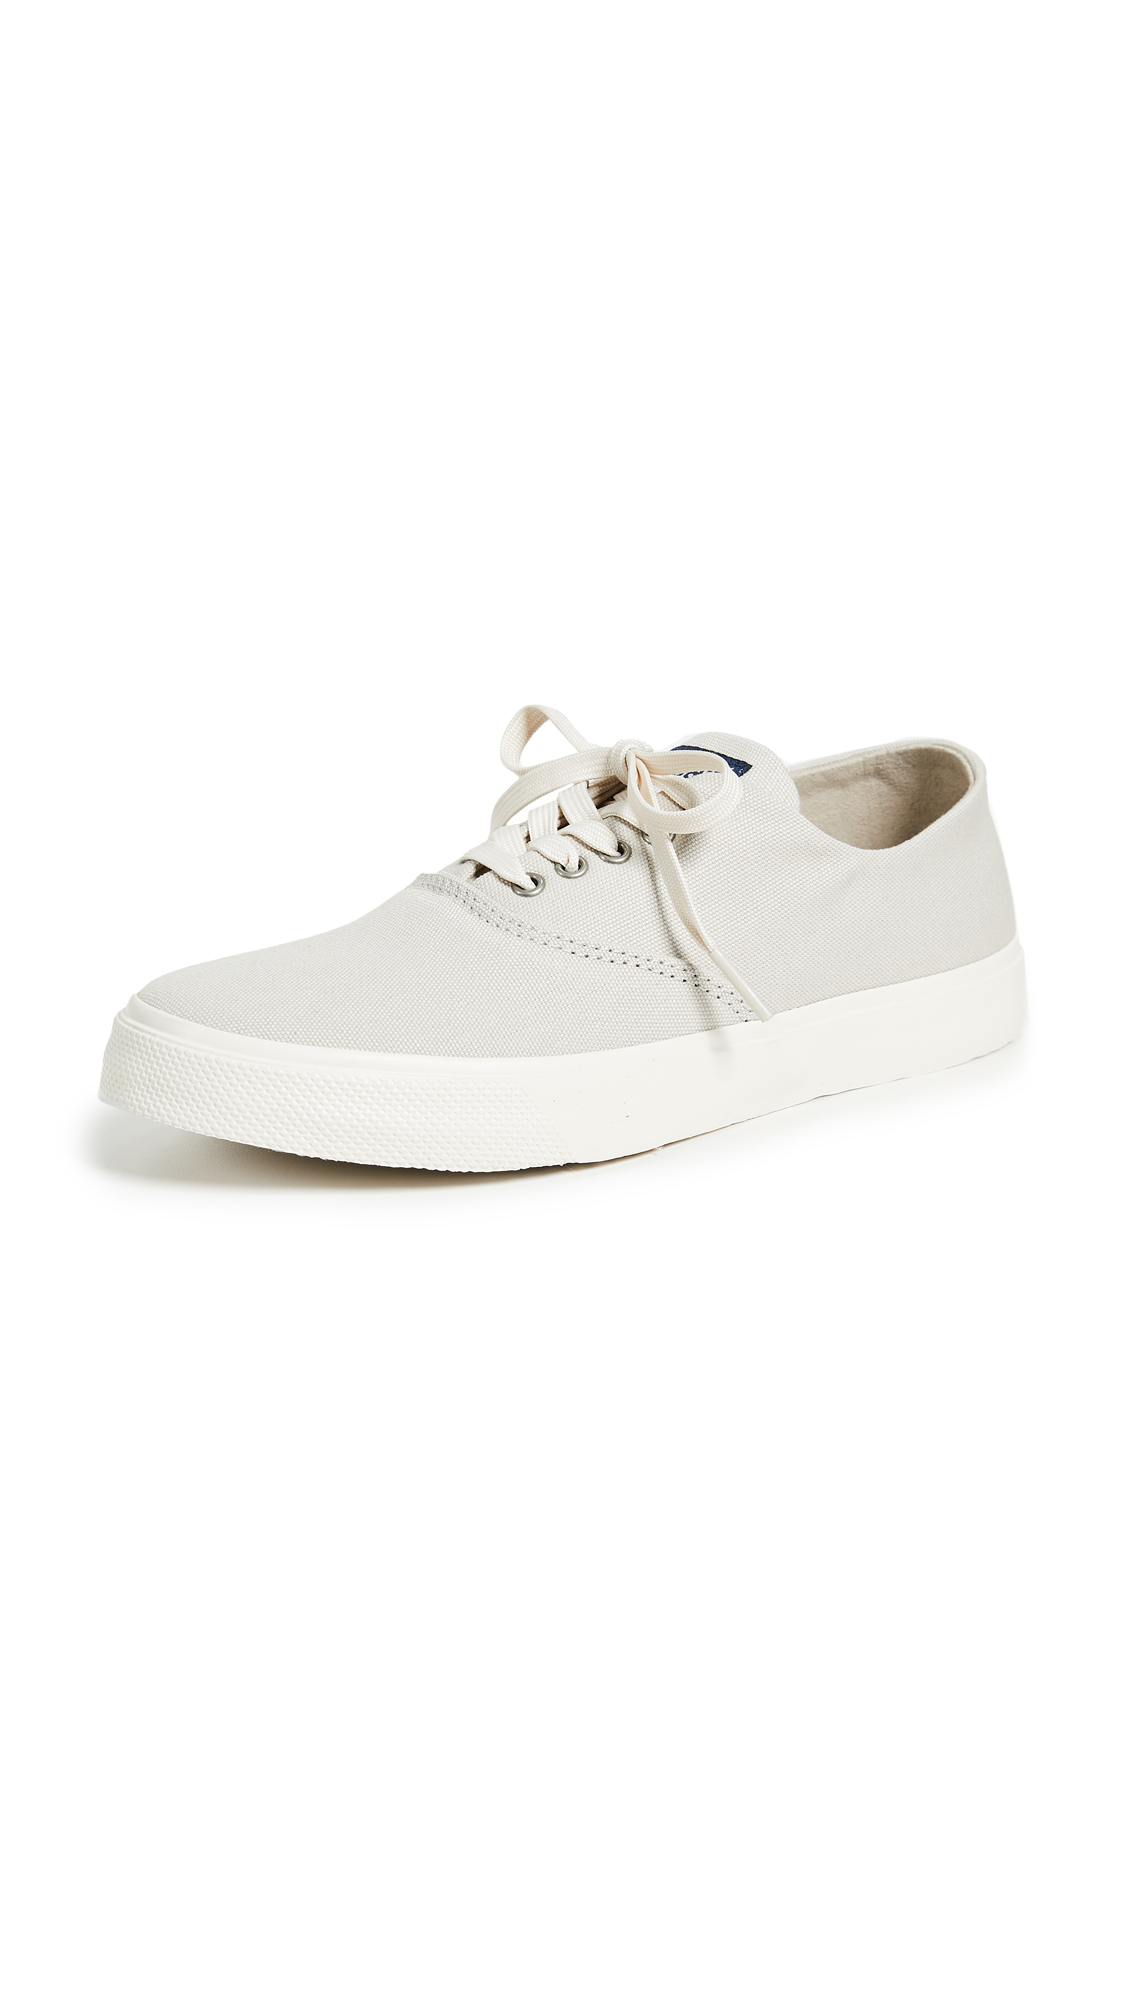 Sperry Captains CVO Sneakers - Light Grey